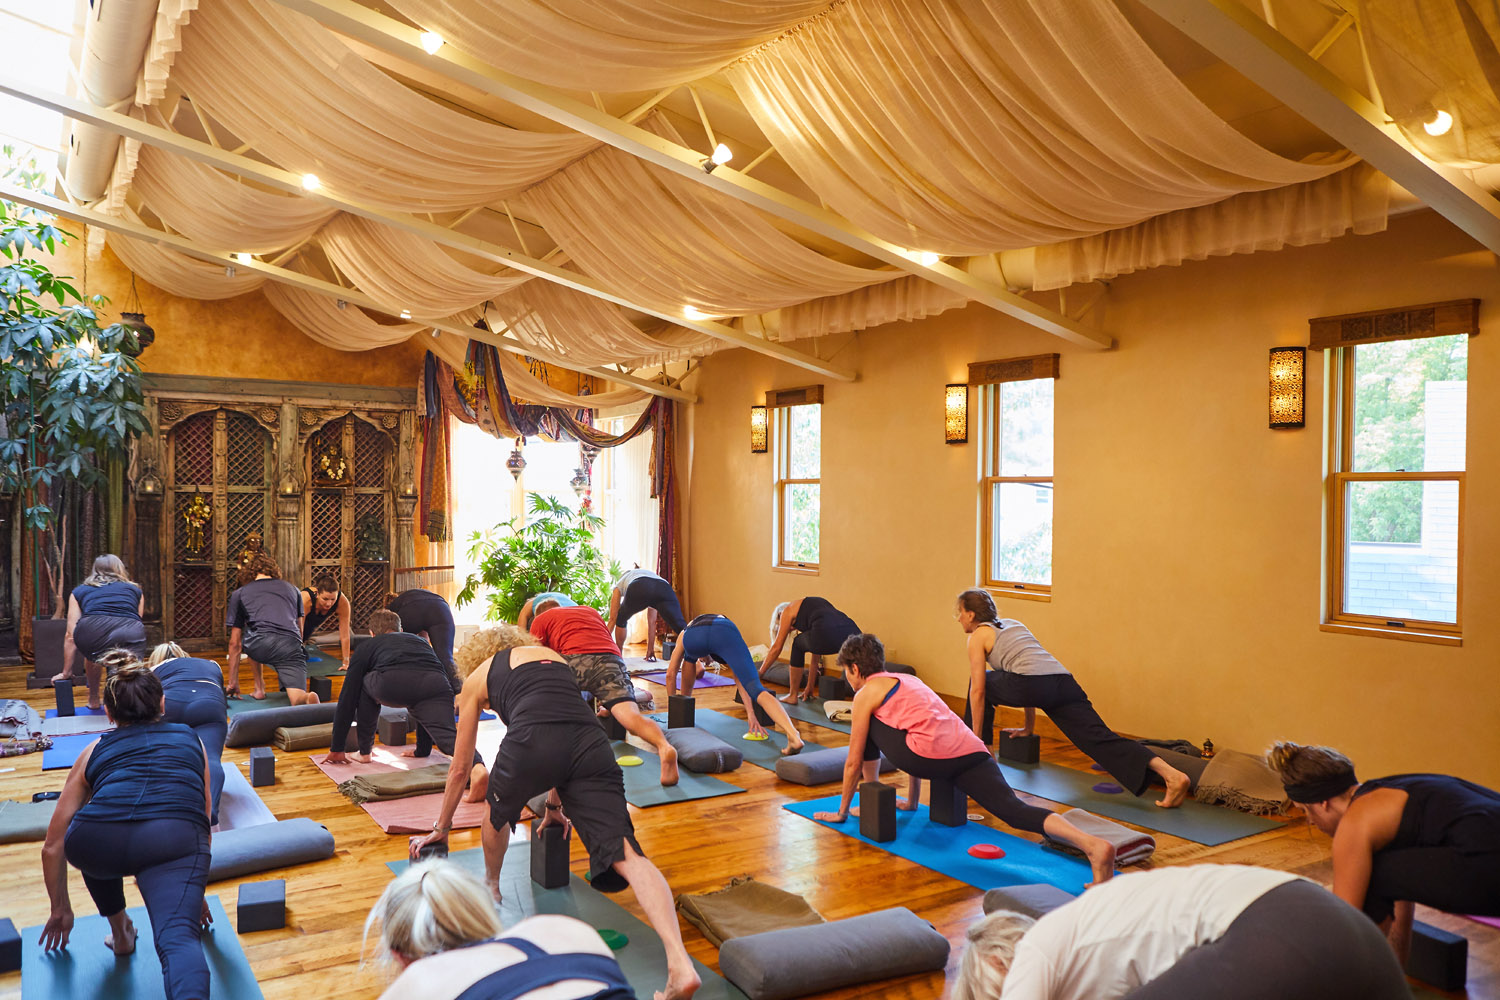 CLASSES - From yoga to dance, from Pilates to meditation, our impactful classes align mind, body and spirit with intention.VIEW SCHEDULE